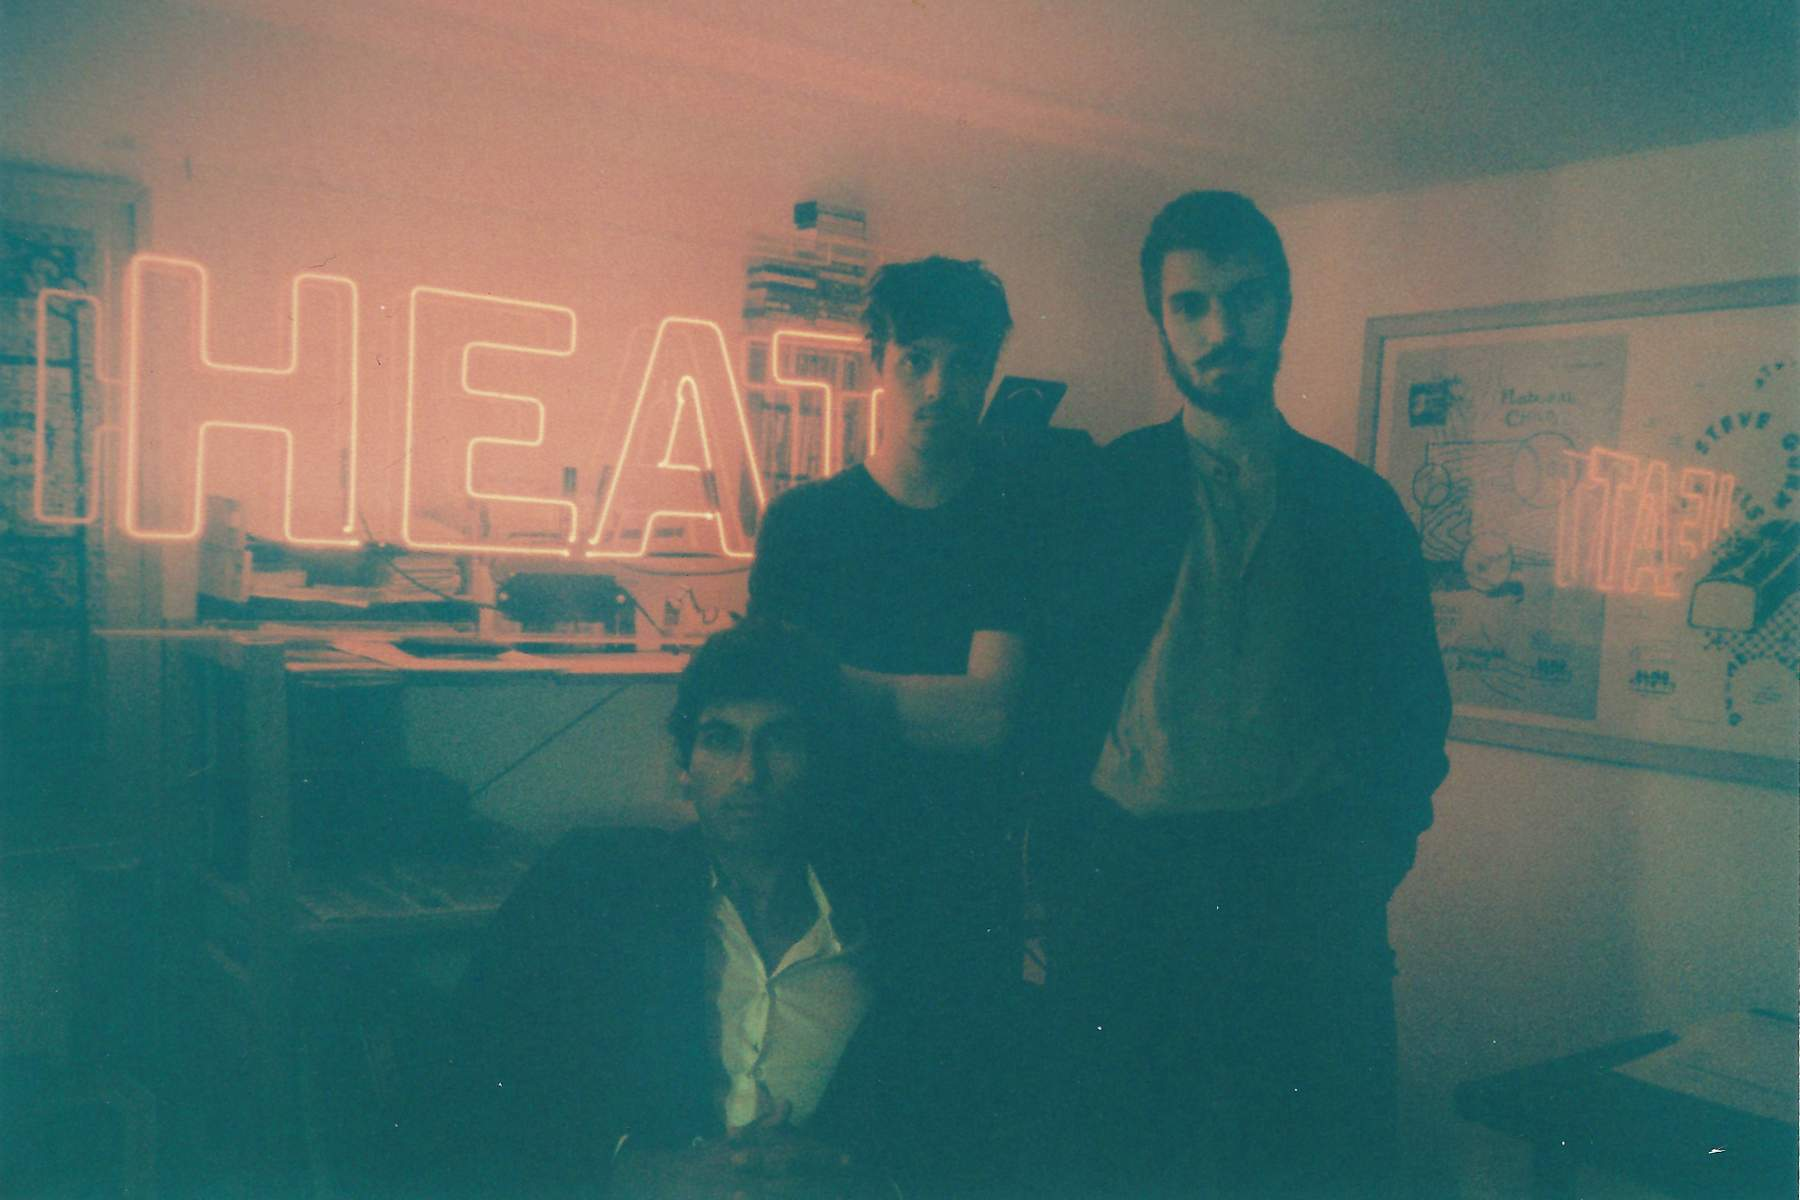 Montreal buzz trio Heat launch their debut full-length Overnight